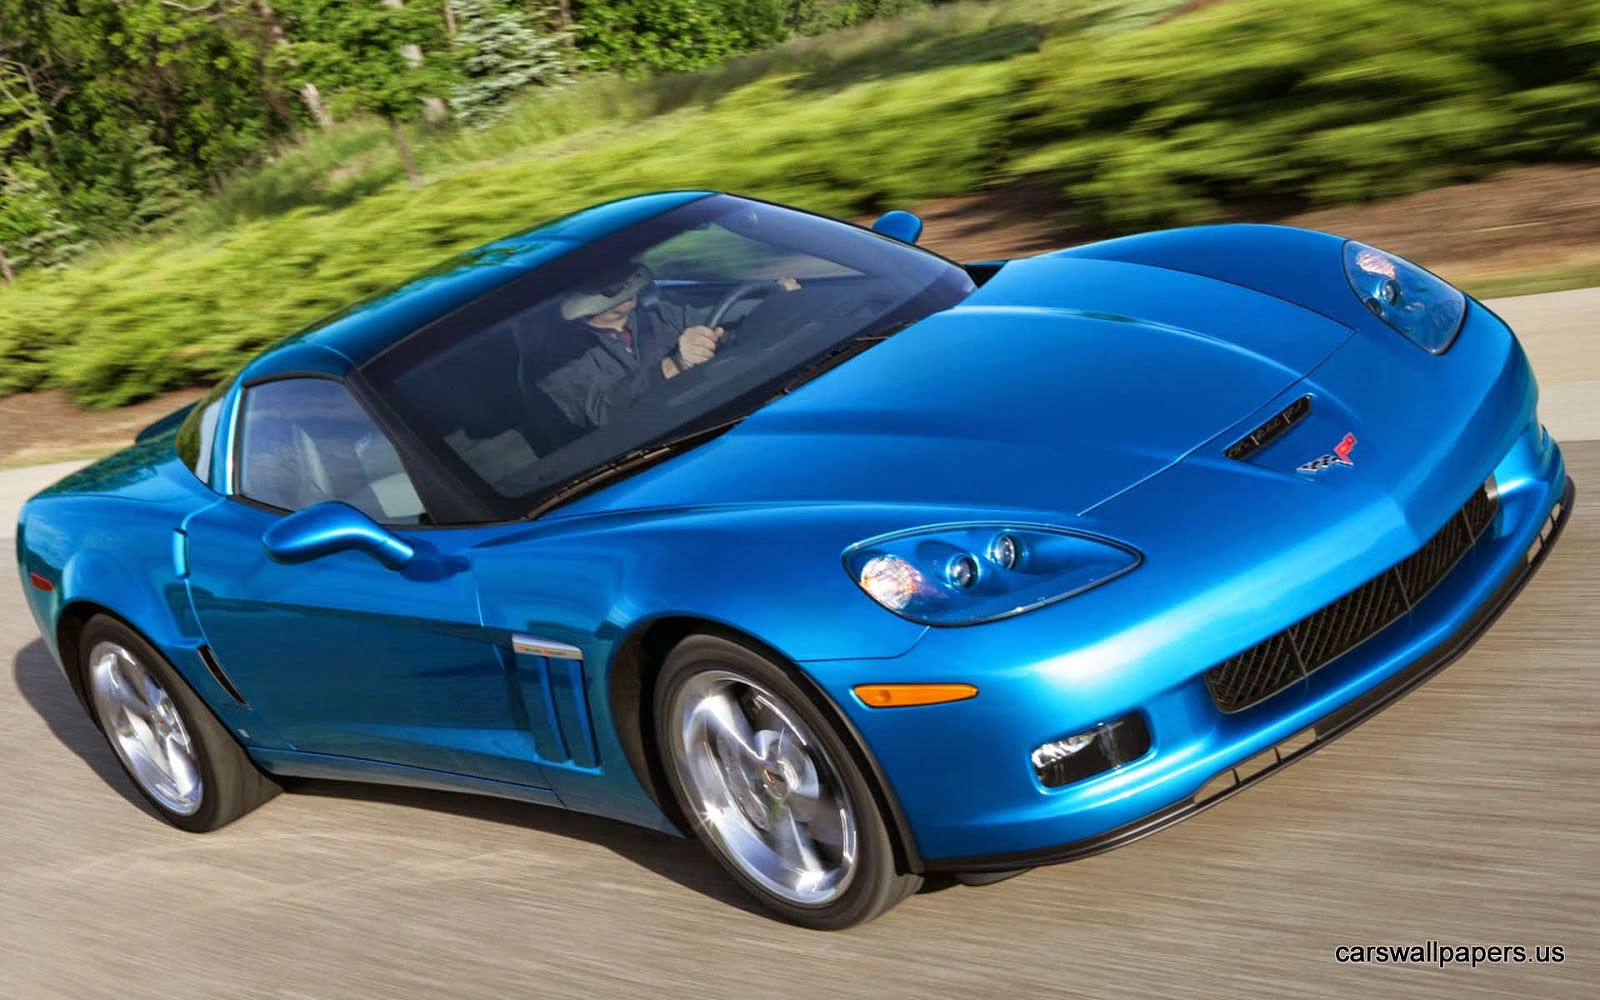 Beautiful Blue Cars Wallpapers Desktop HD Wallpapers 1600x1000